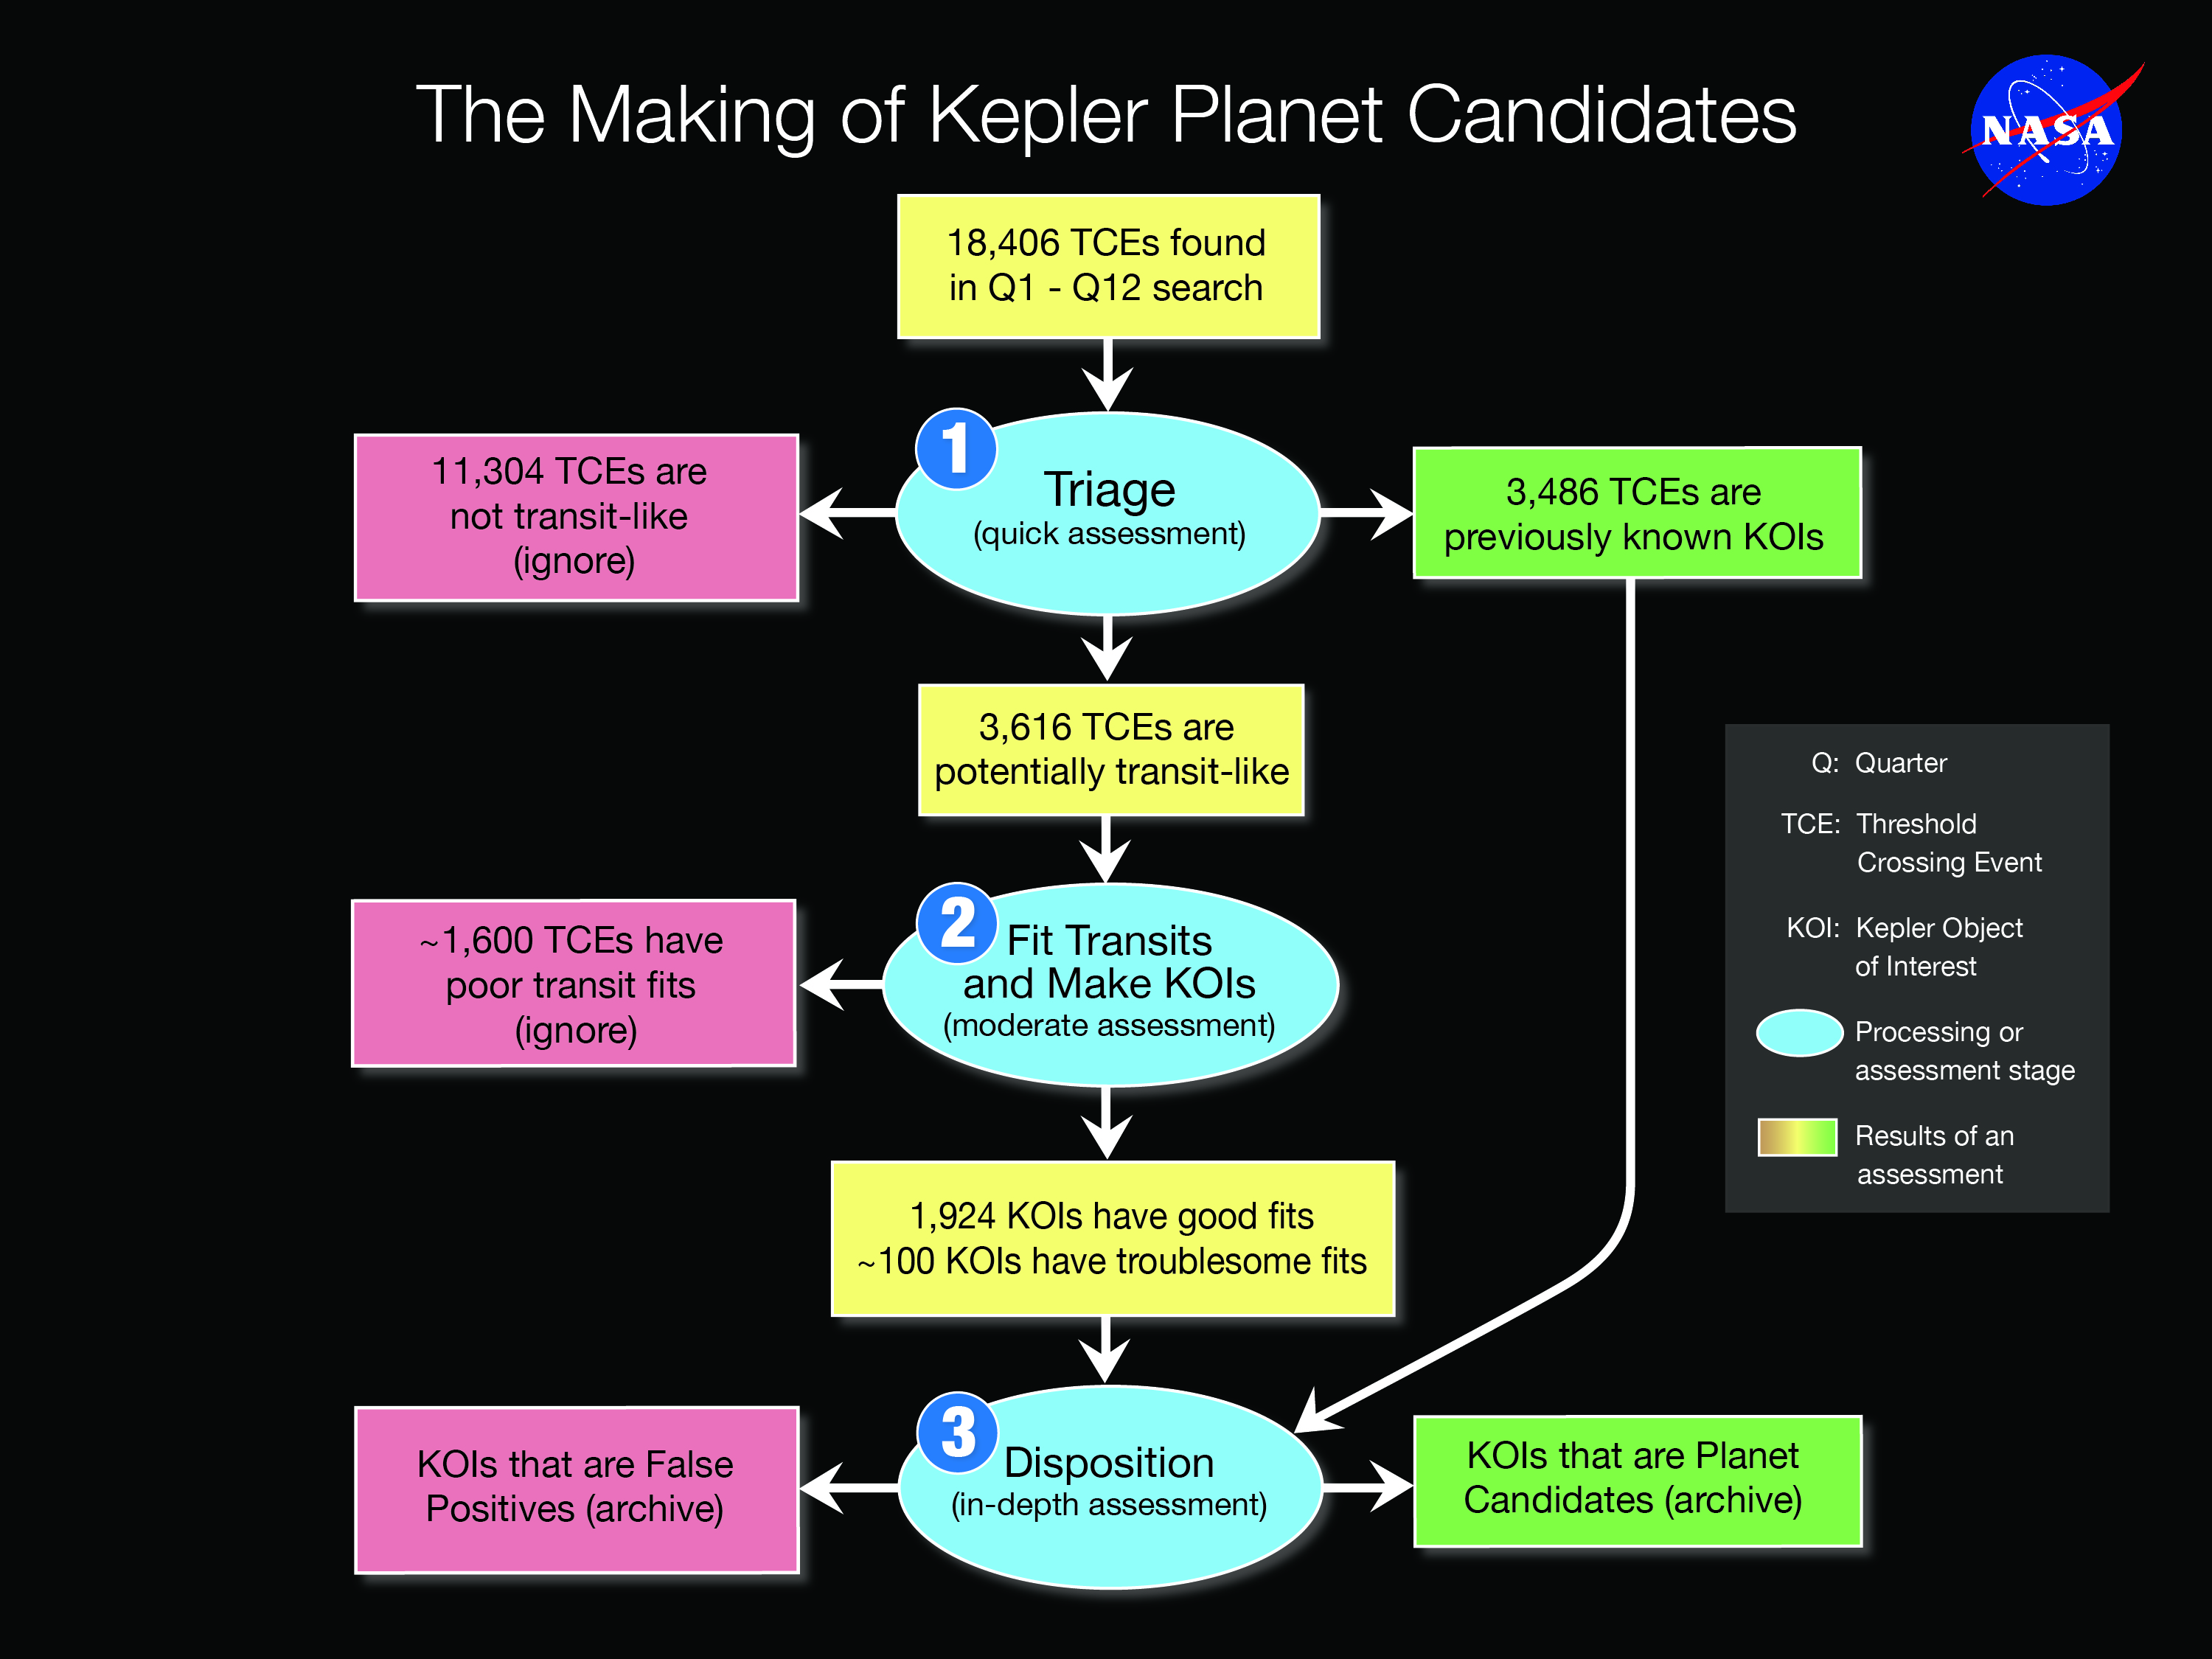 flow diagram of Kepler data through the stages of becoming a planet candidate.